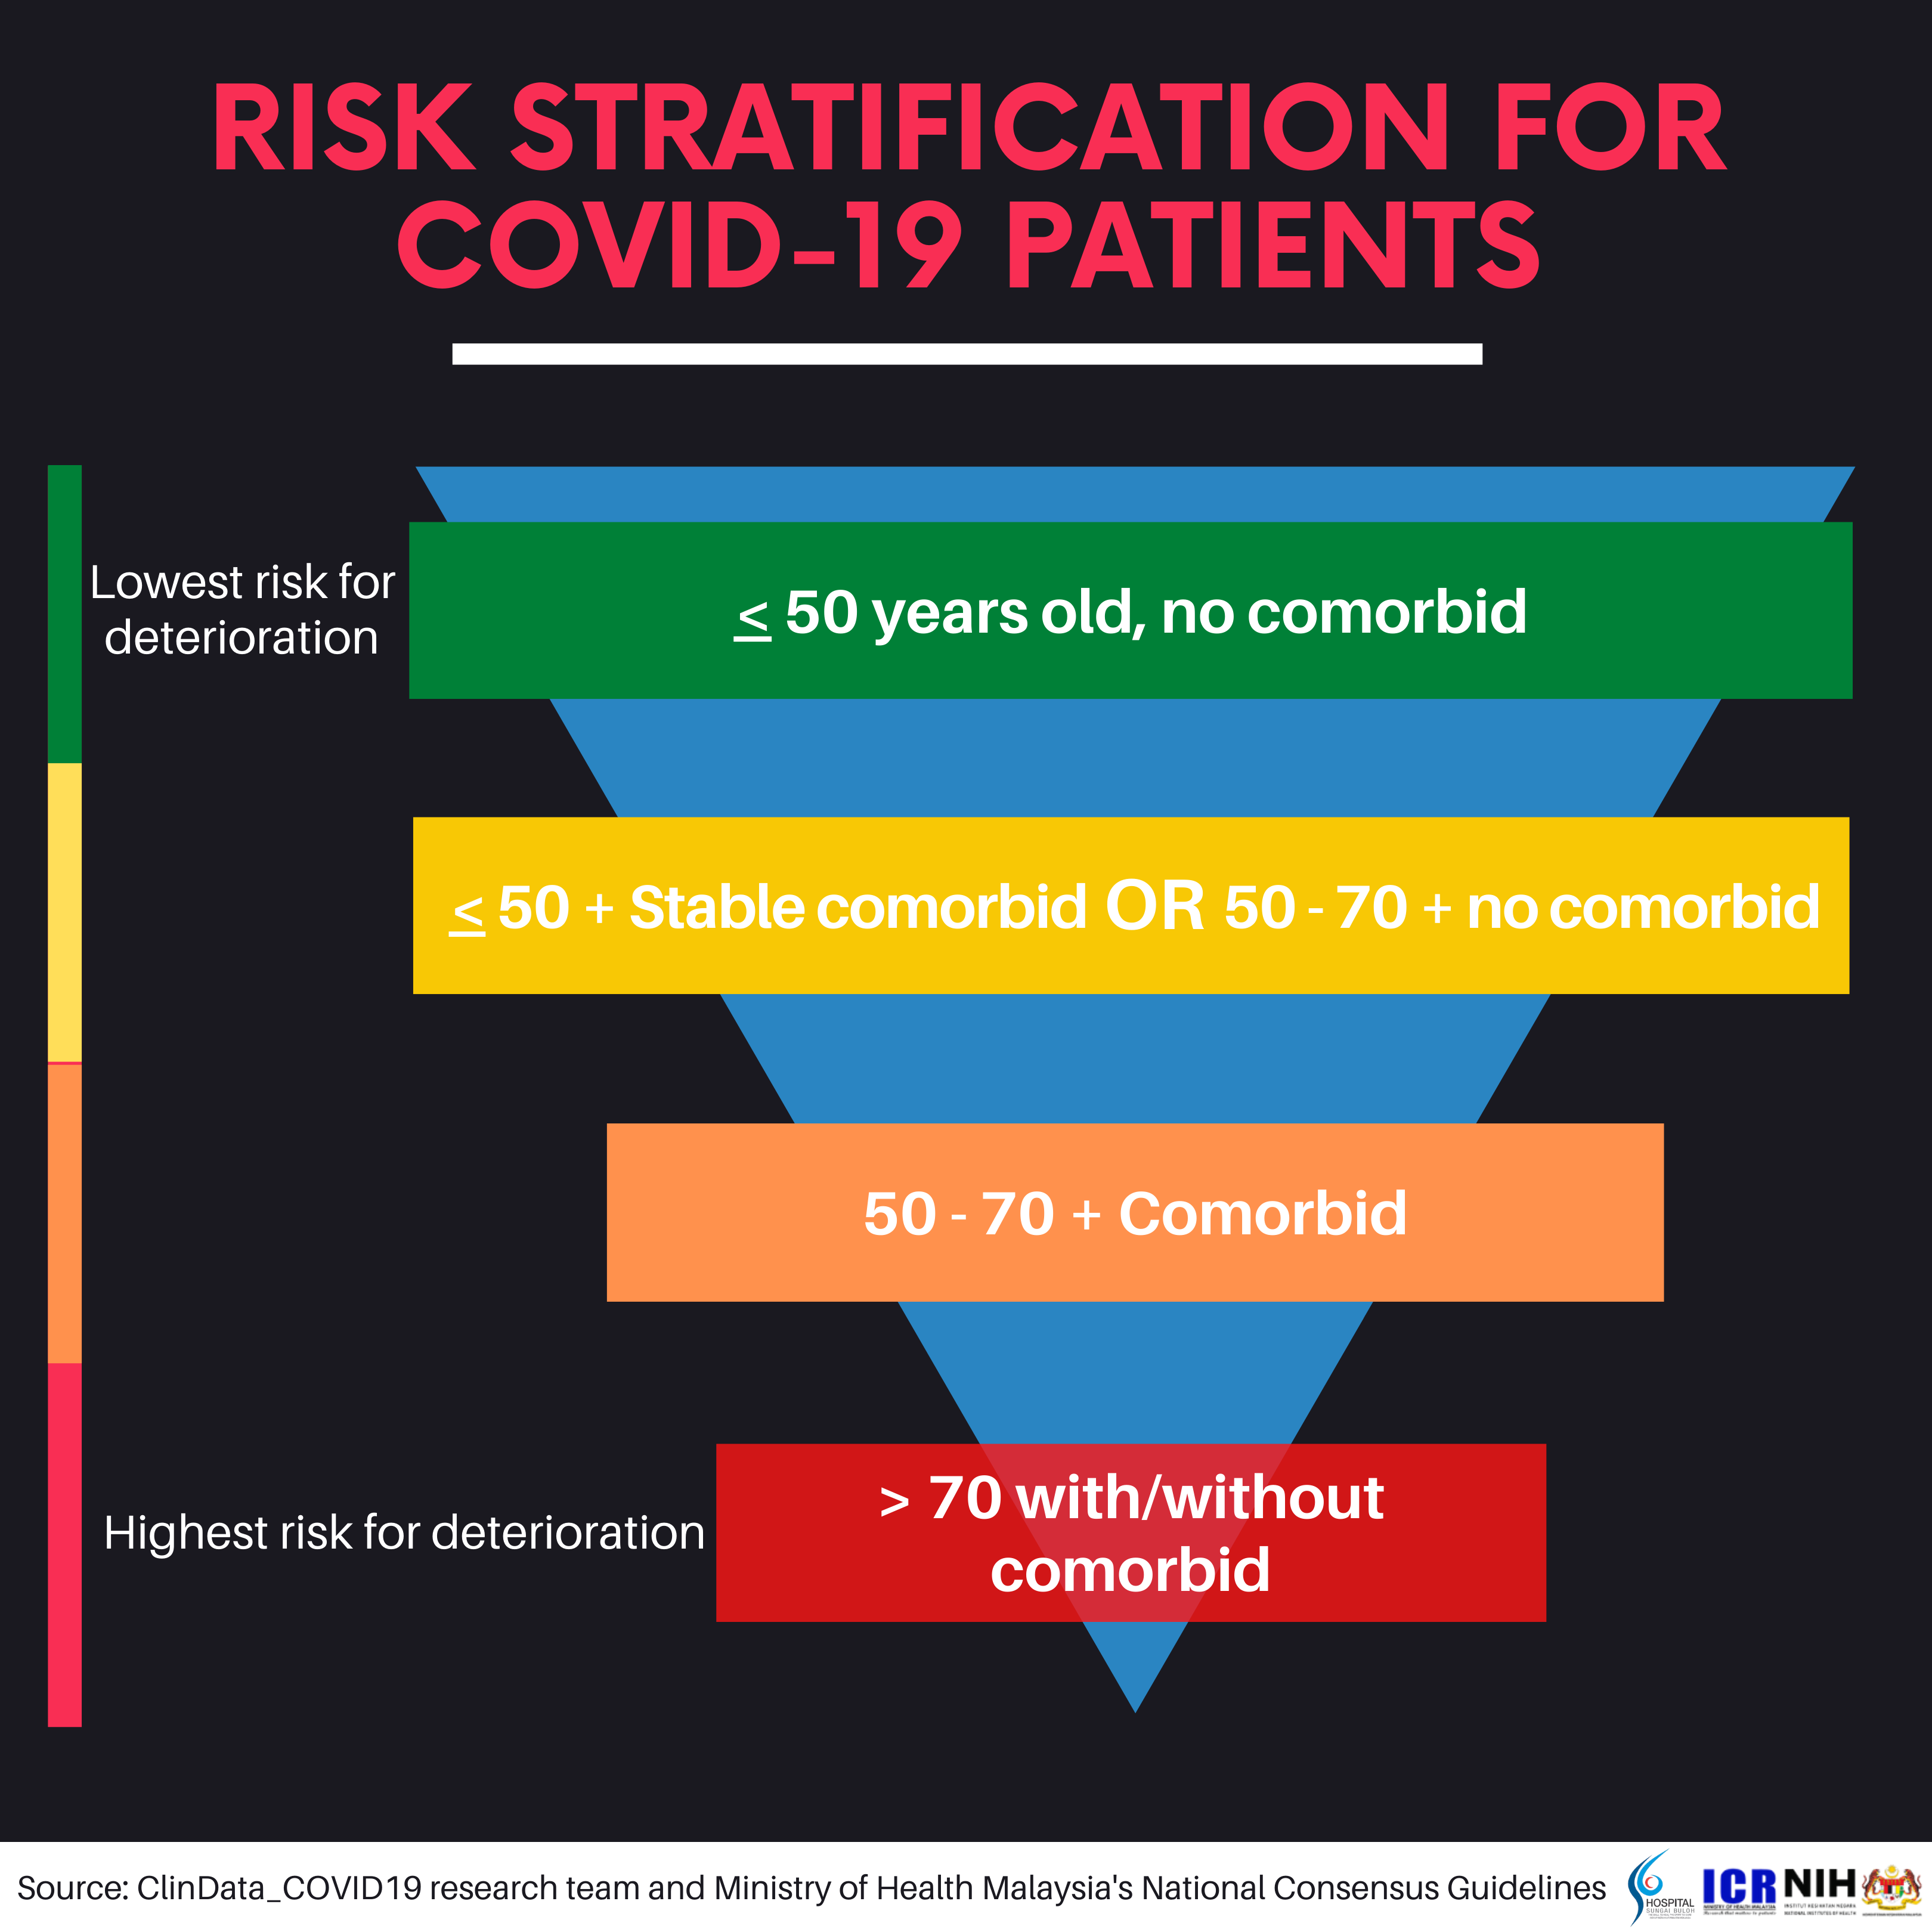 Risk Stratification for COVID-19 Patients & COVID-19 Warning signs